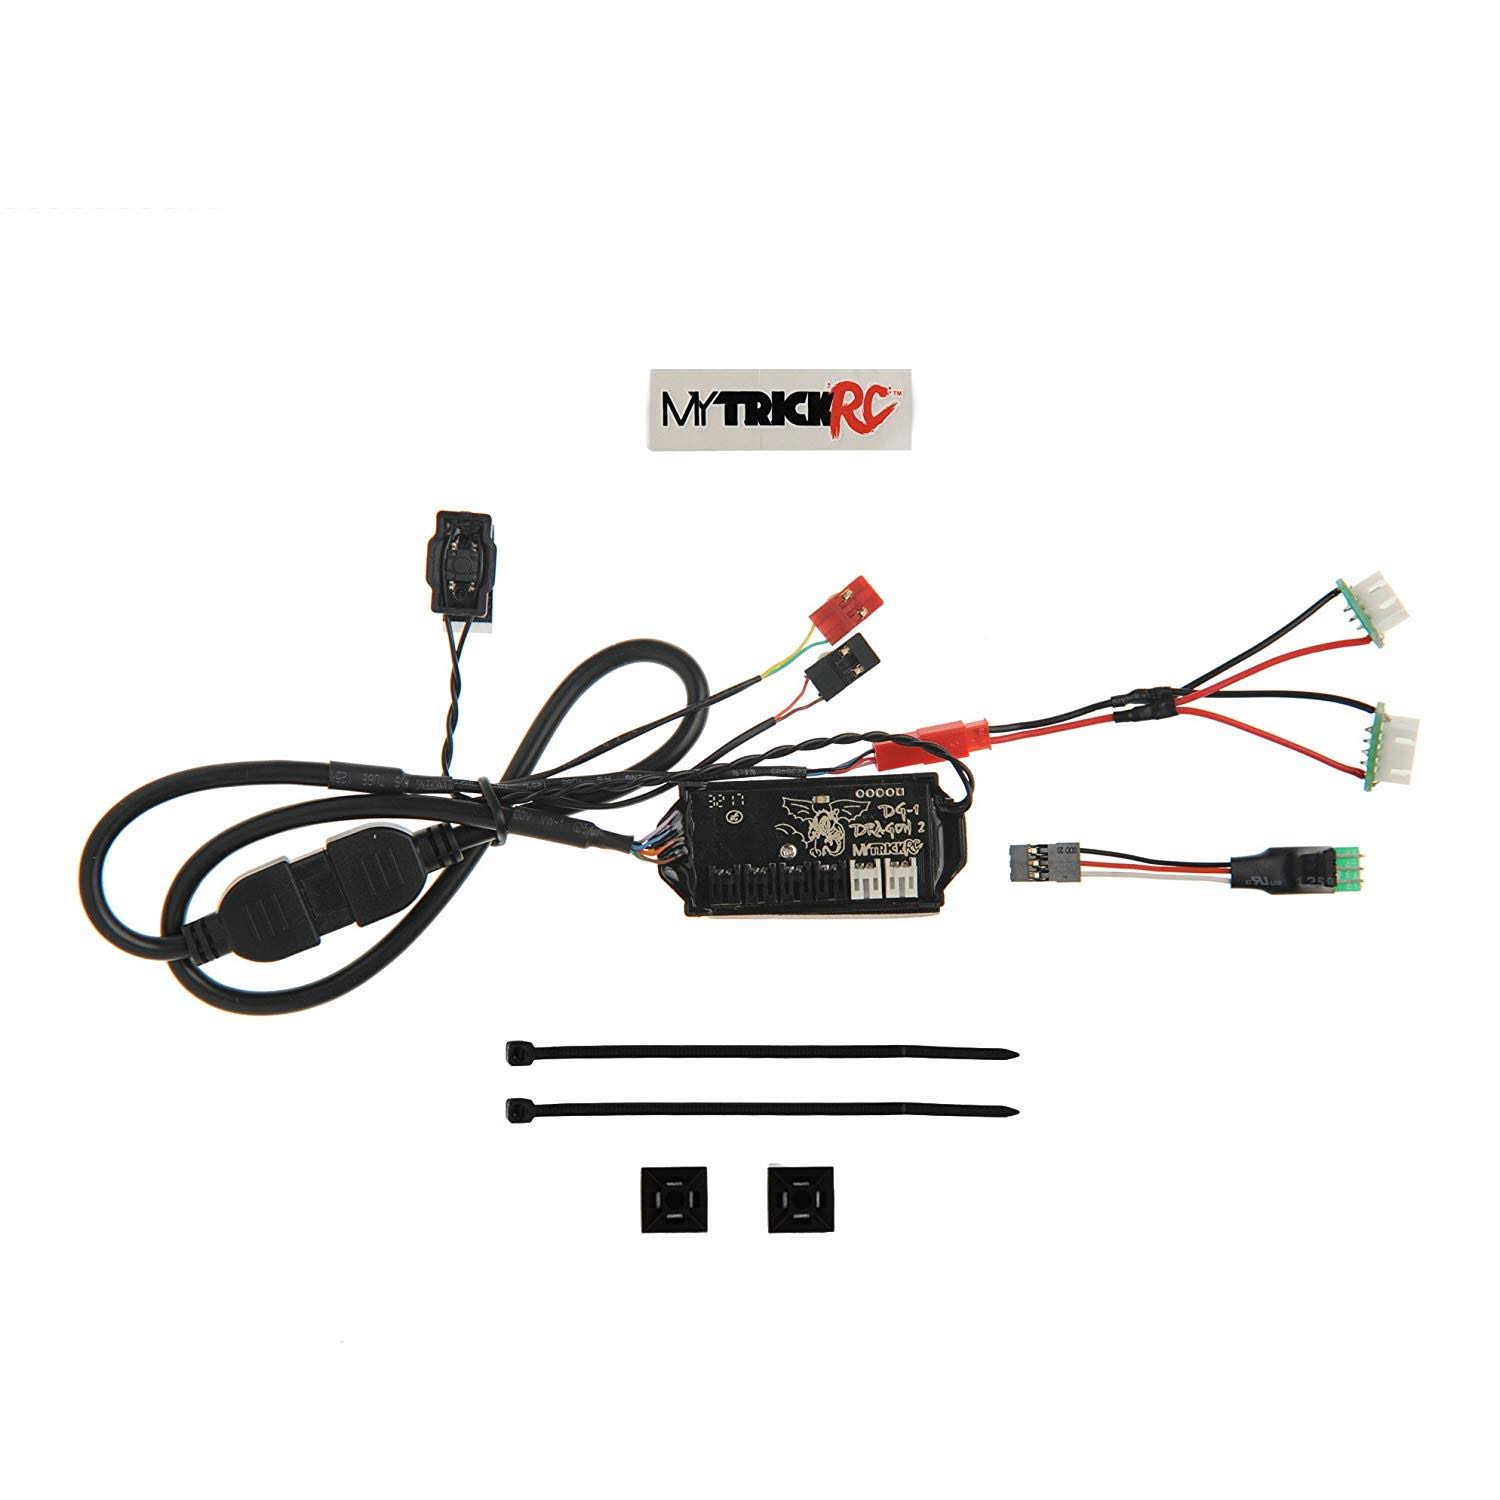 MyTrickRC RDG DG-1 Controller II - Replacement Controller for